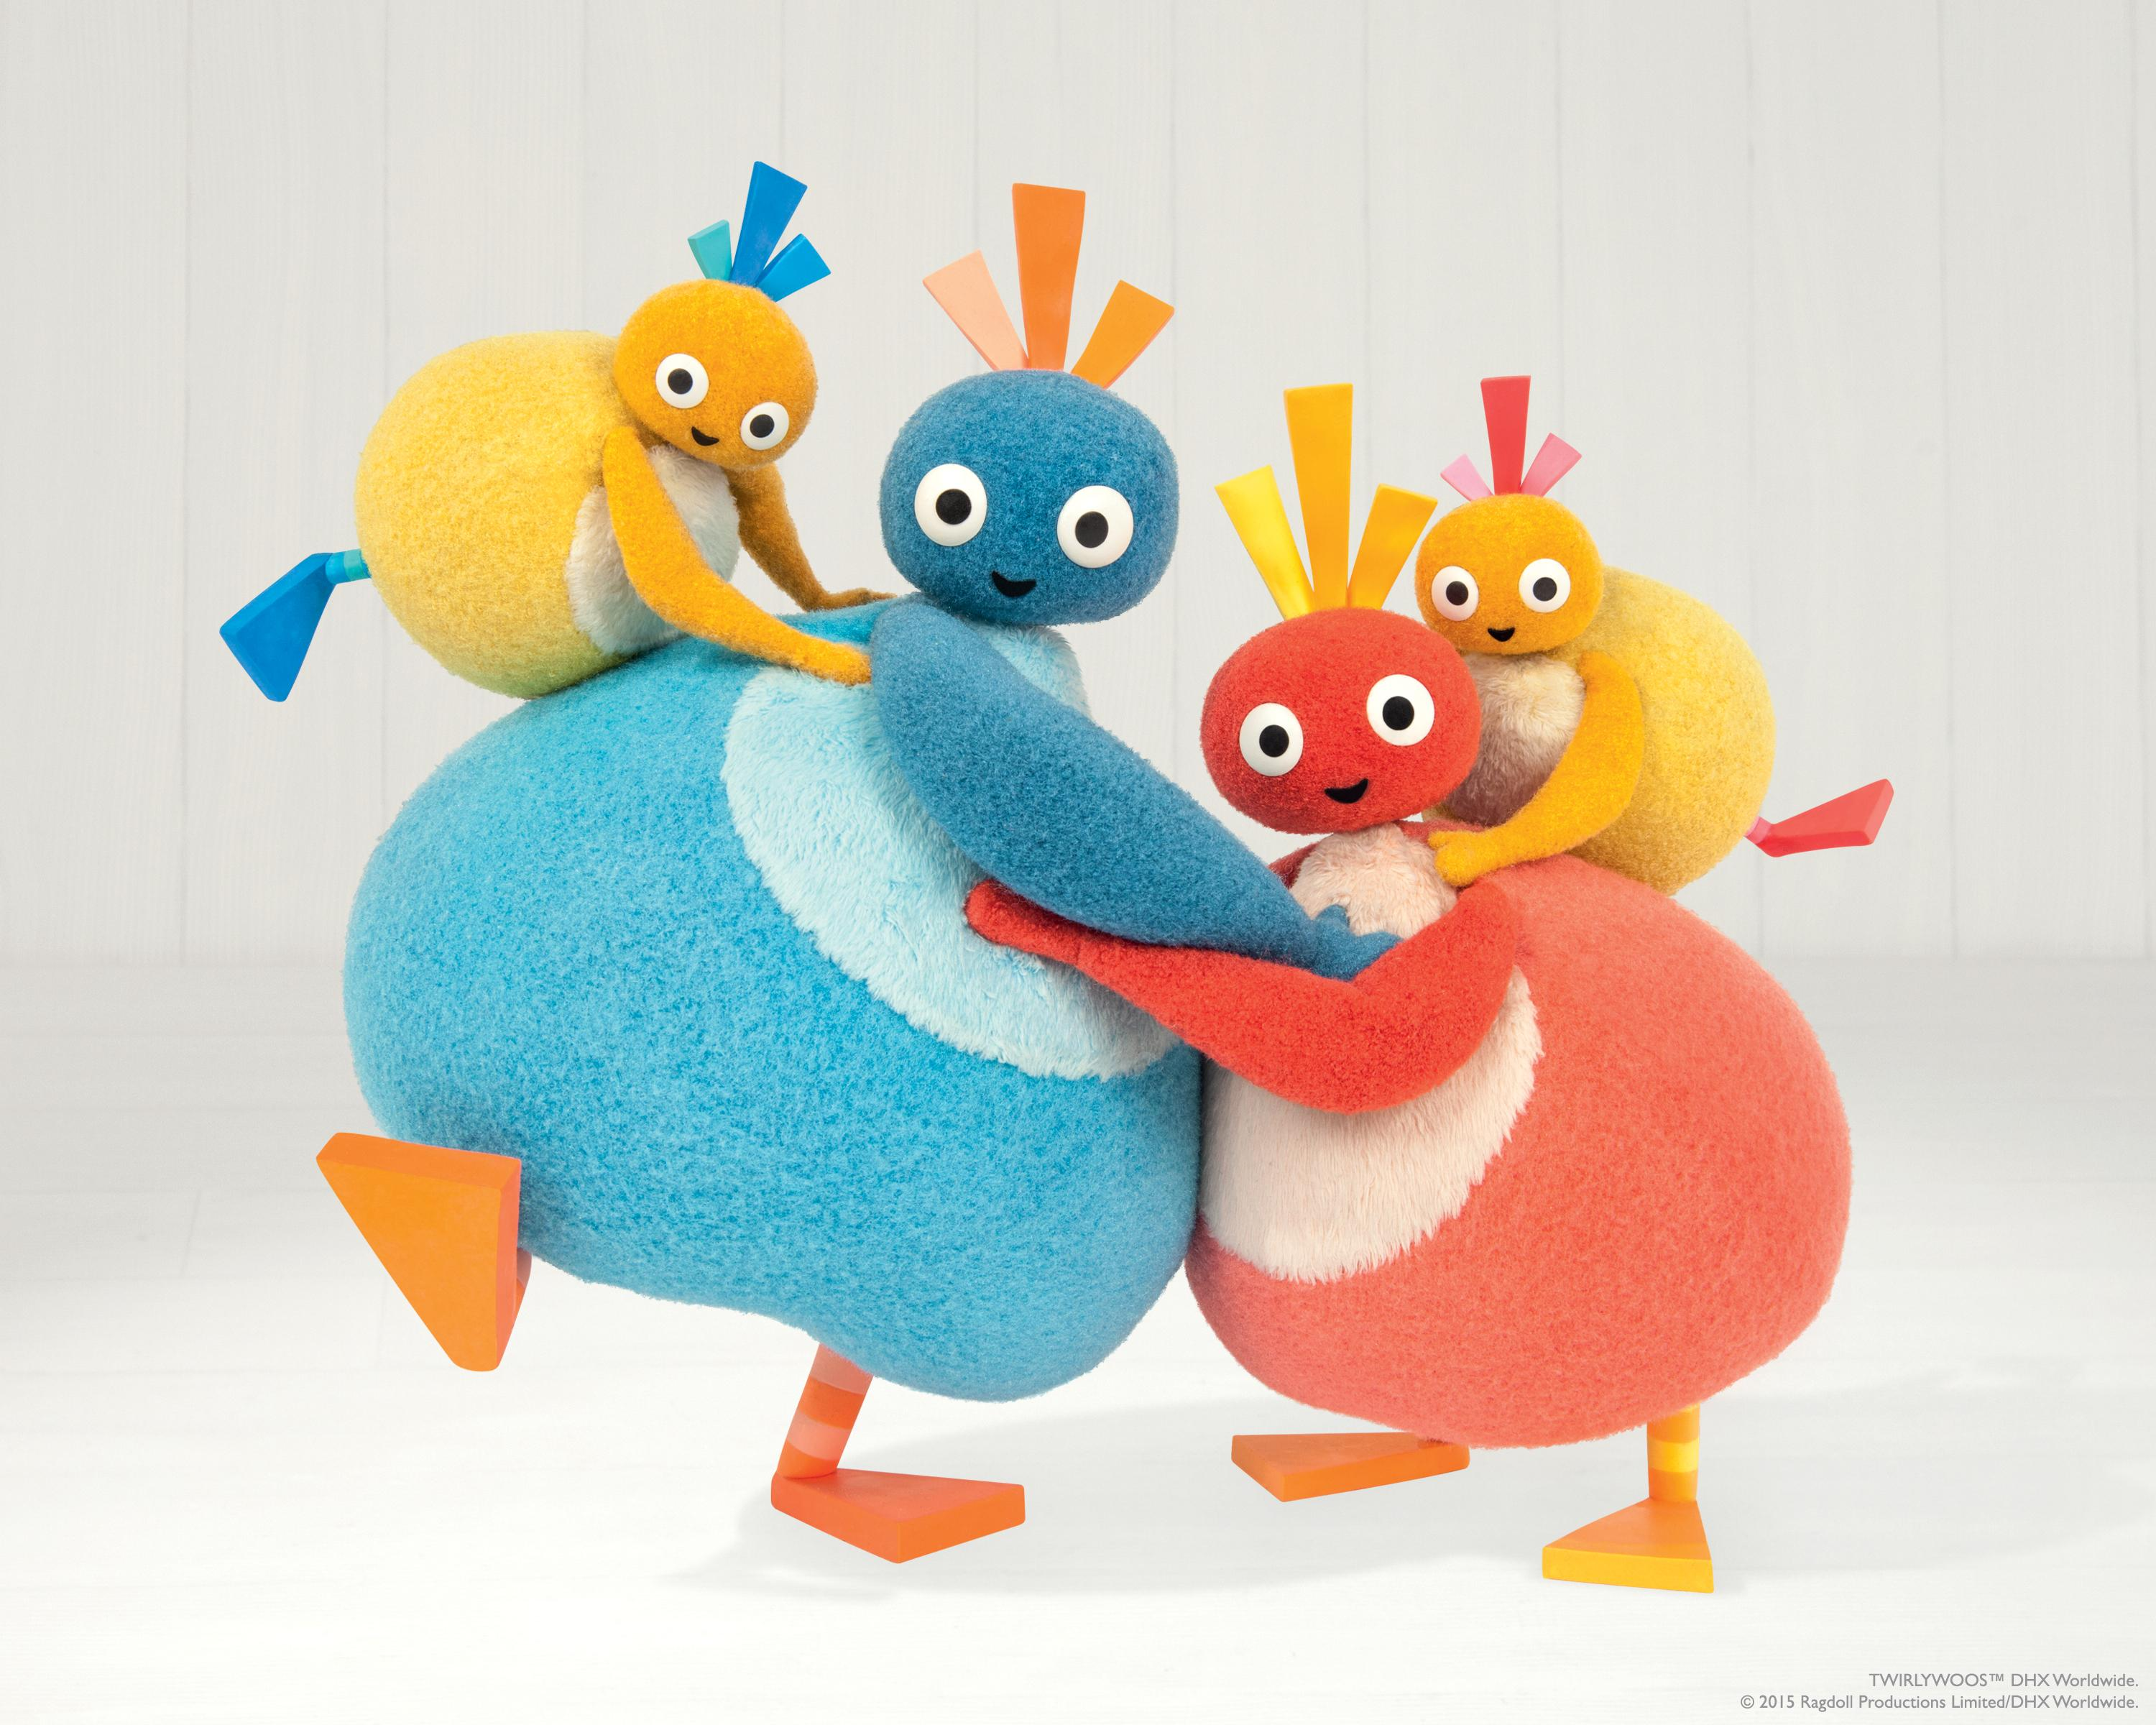 Copied from Kidscreen - TWIRLYWOOS_PR_IMAGE_001_NEW